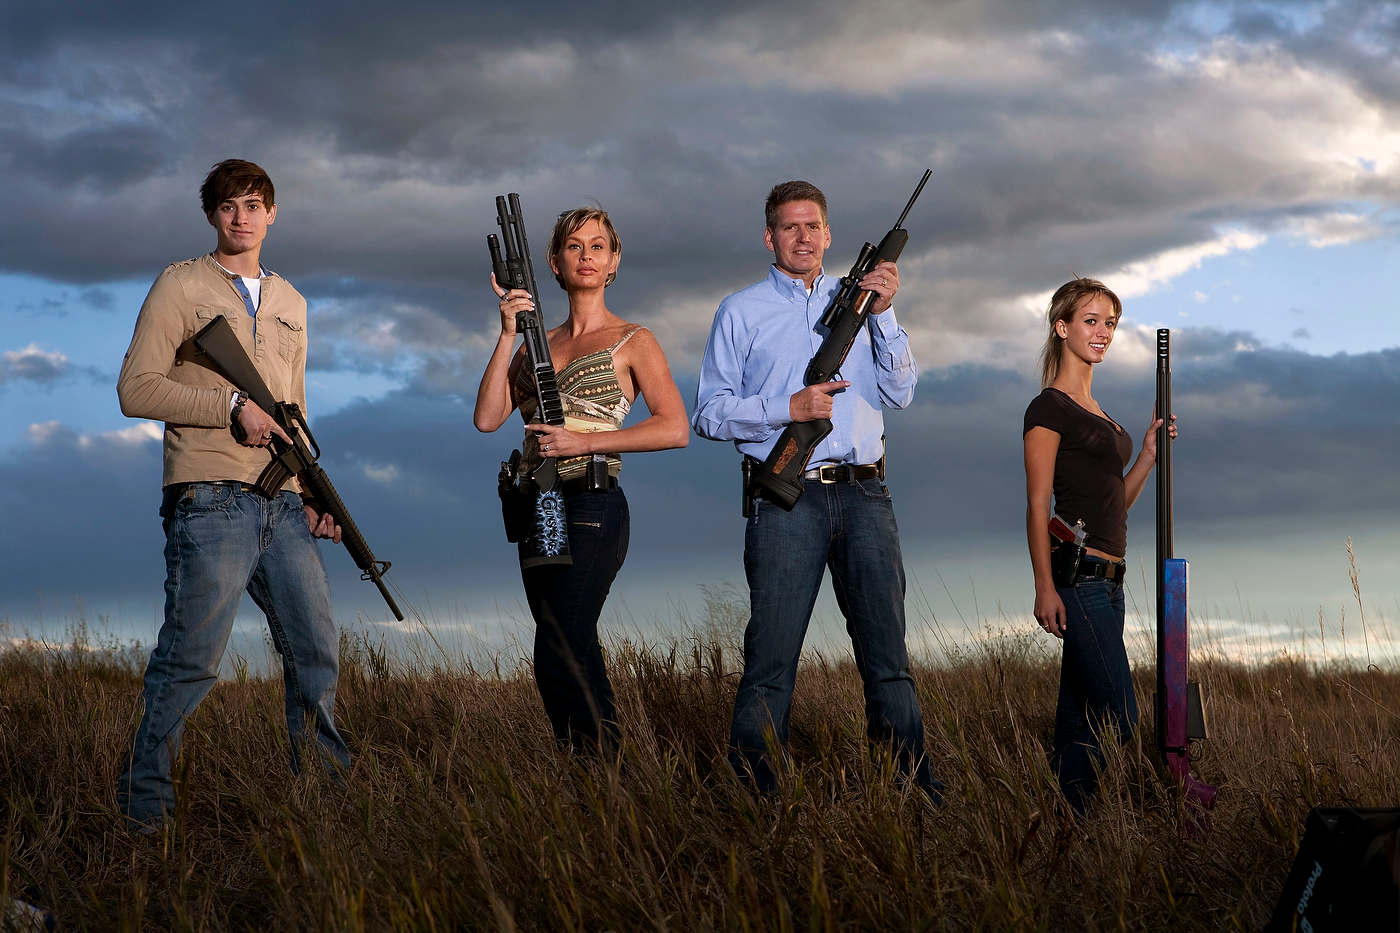 The Wyatt family, Colorado, American Guns, Discovery Channel.